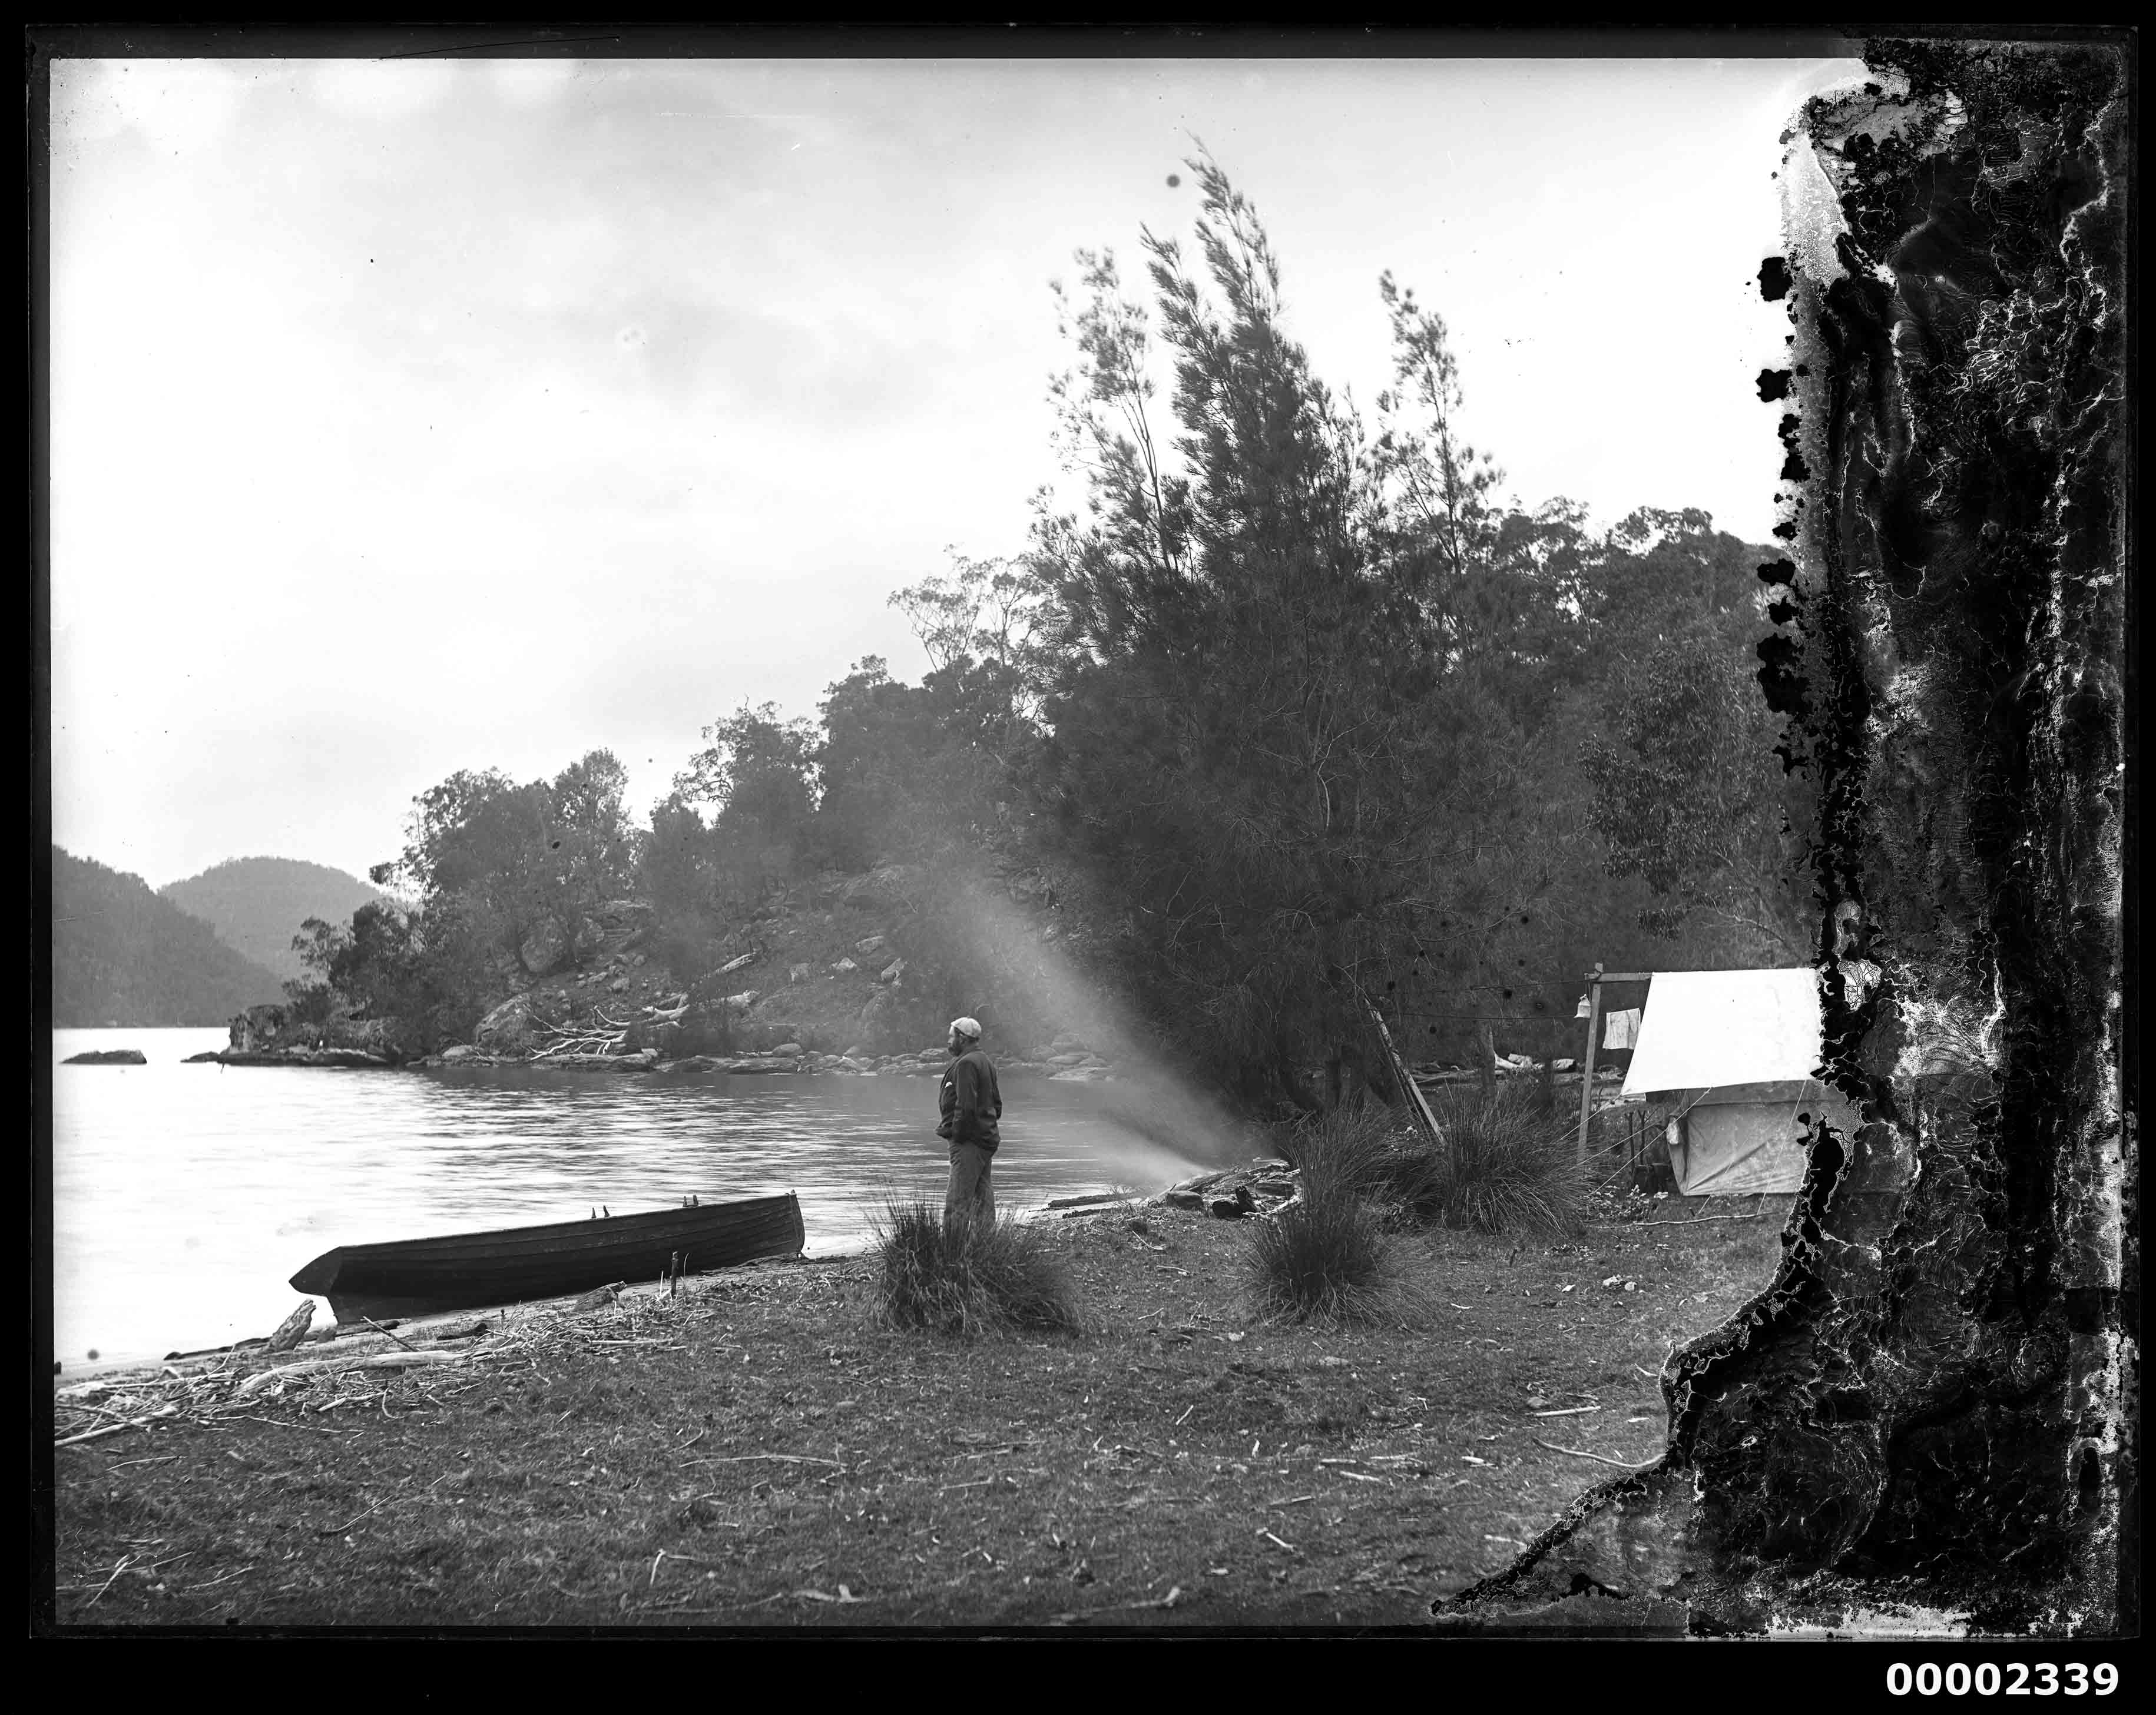 Camp set up, possibly by the Hawkesbury River, 1880-1909